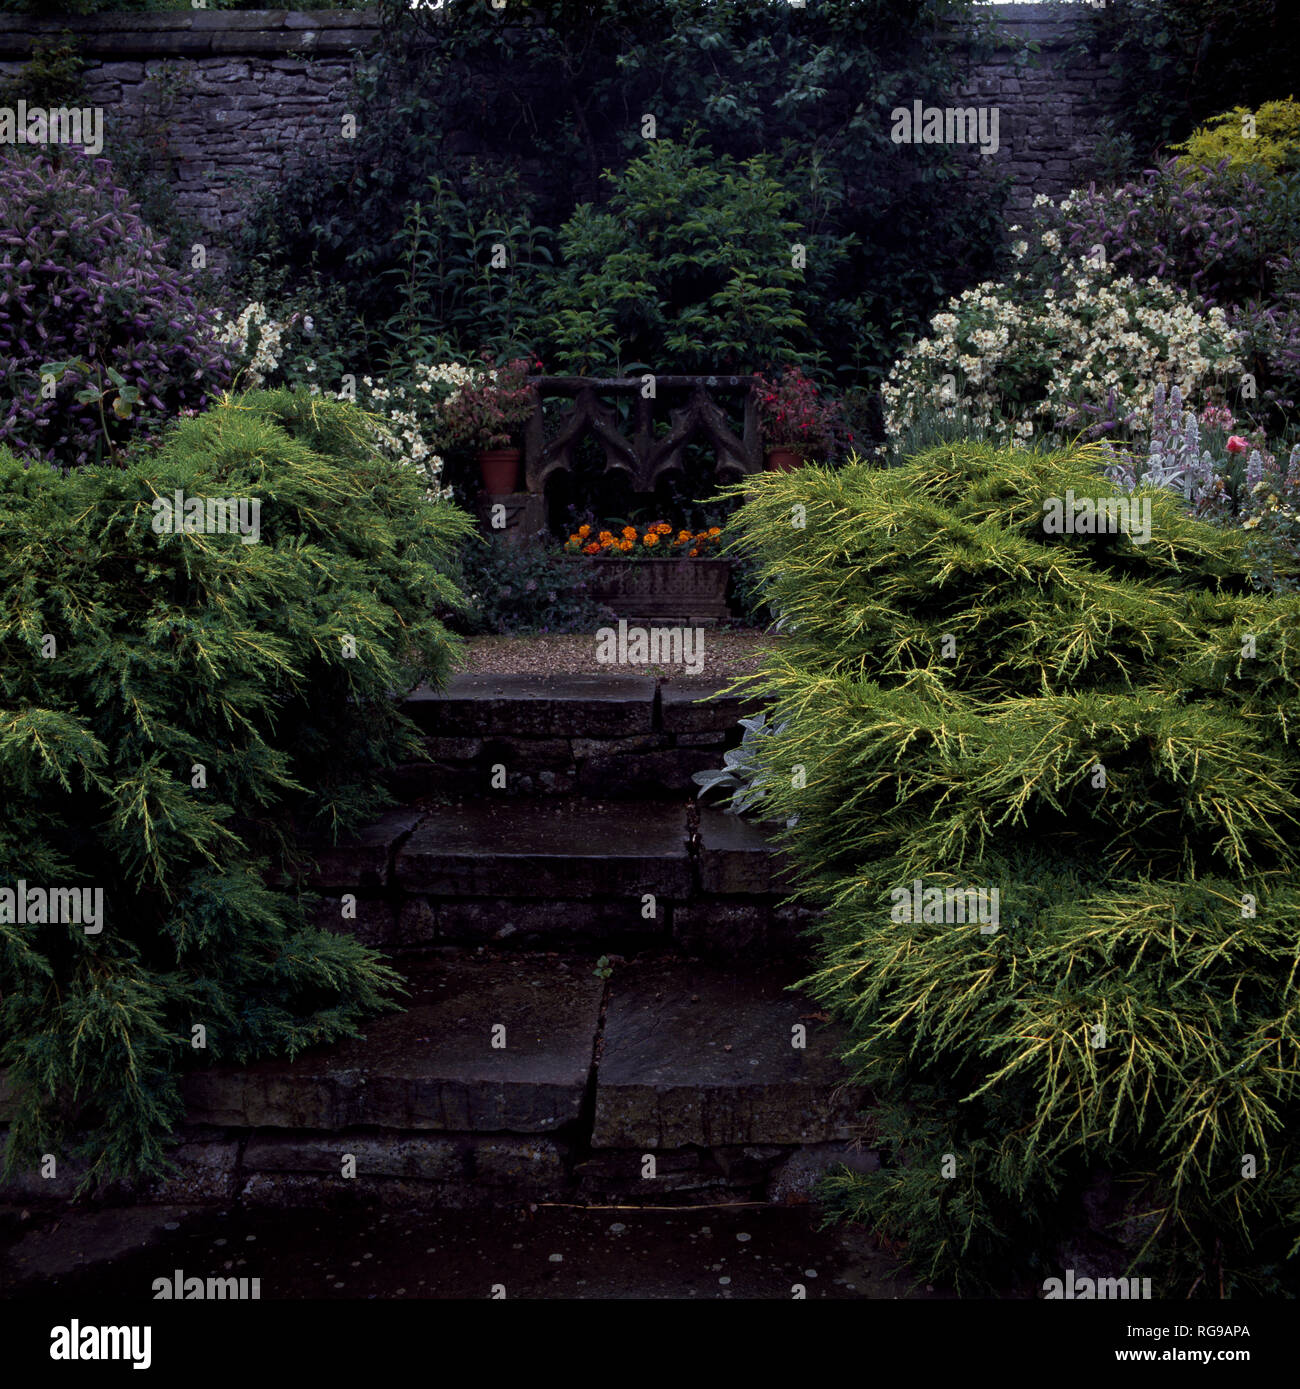 Dwarf conifers growing either side of stone steps - Stock Image